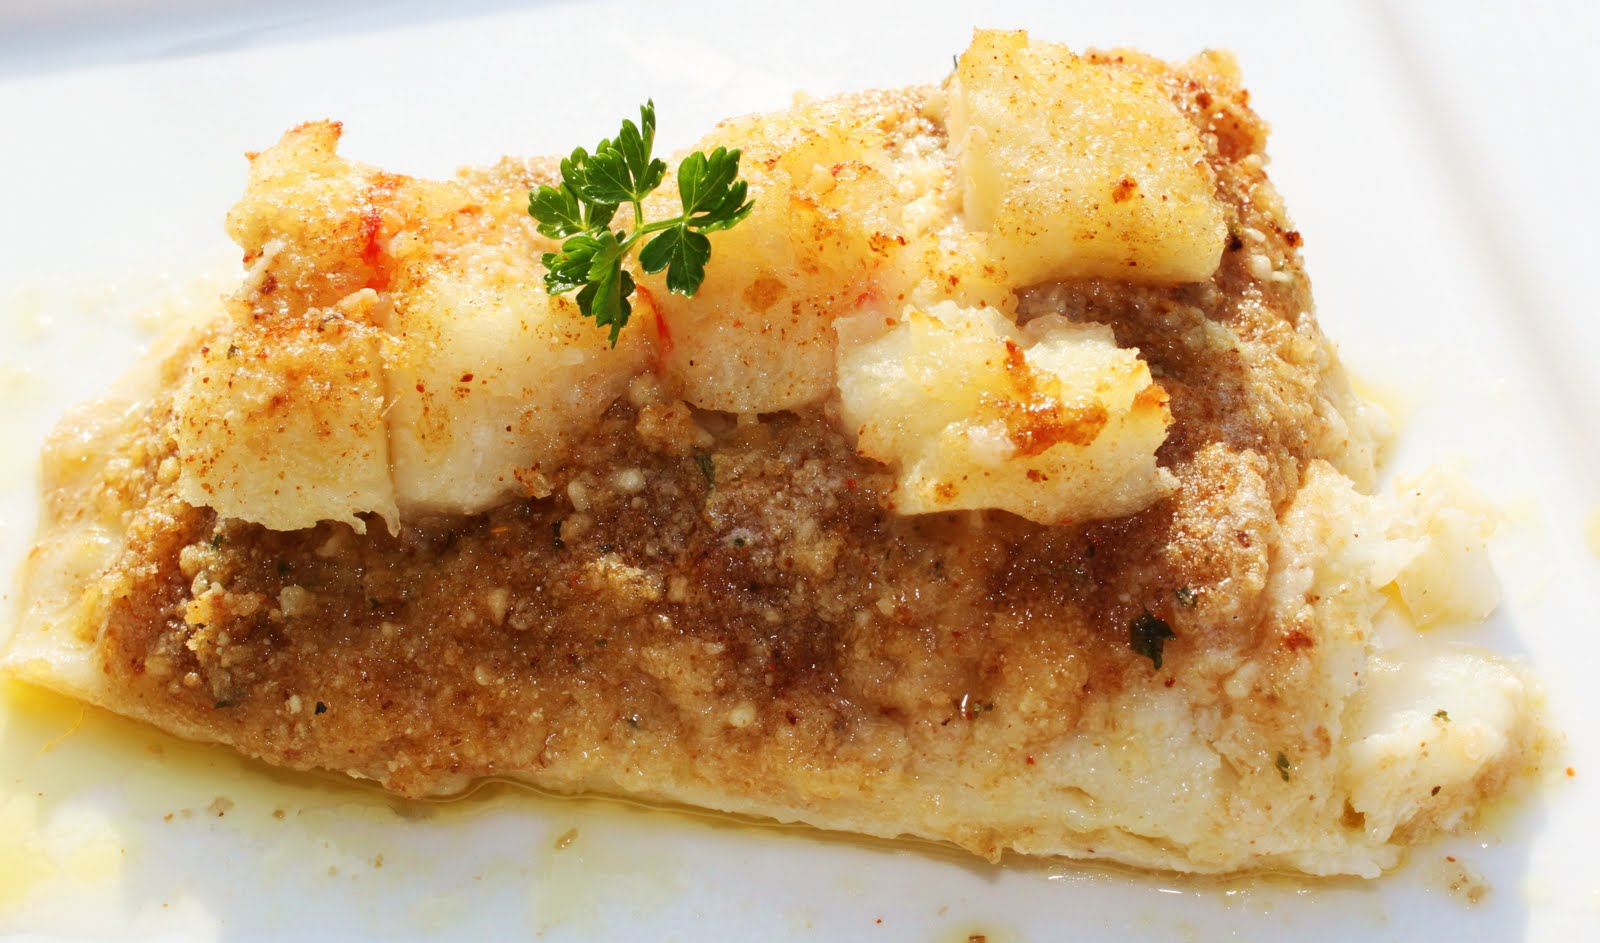 What's Cookin' Italian Style Cuisine: Baked Haddock, Buttery Lobster ...